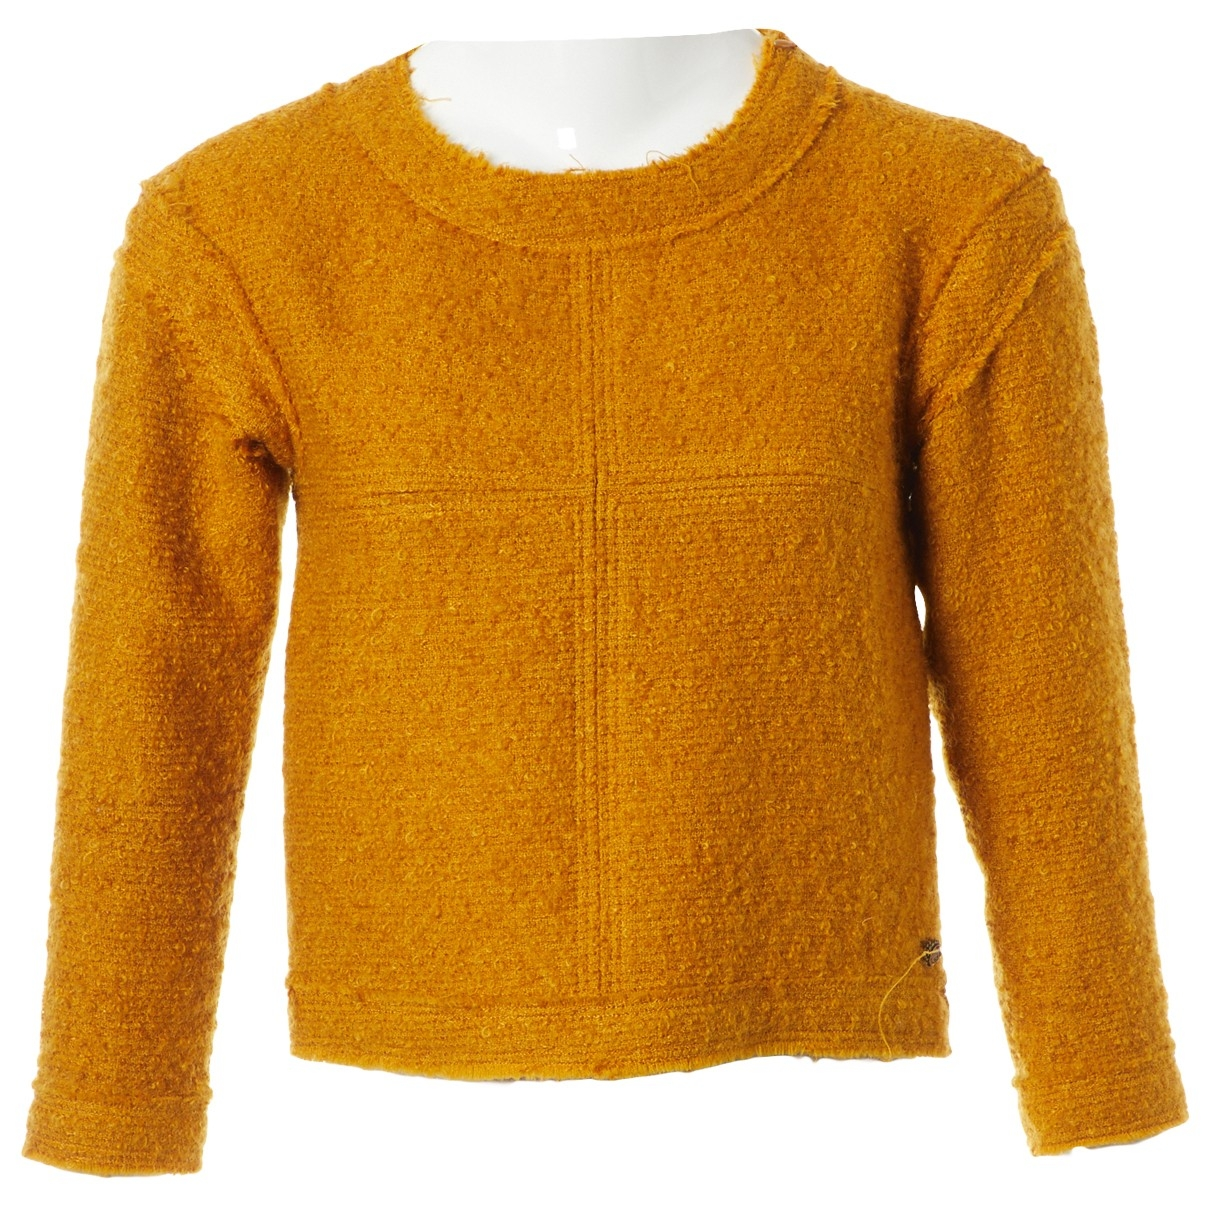 Chanel \N Pullover in  Gelb Wolle